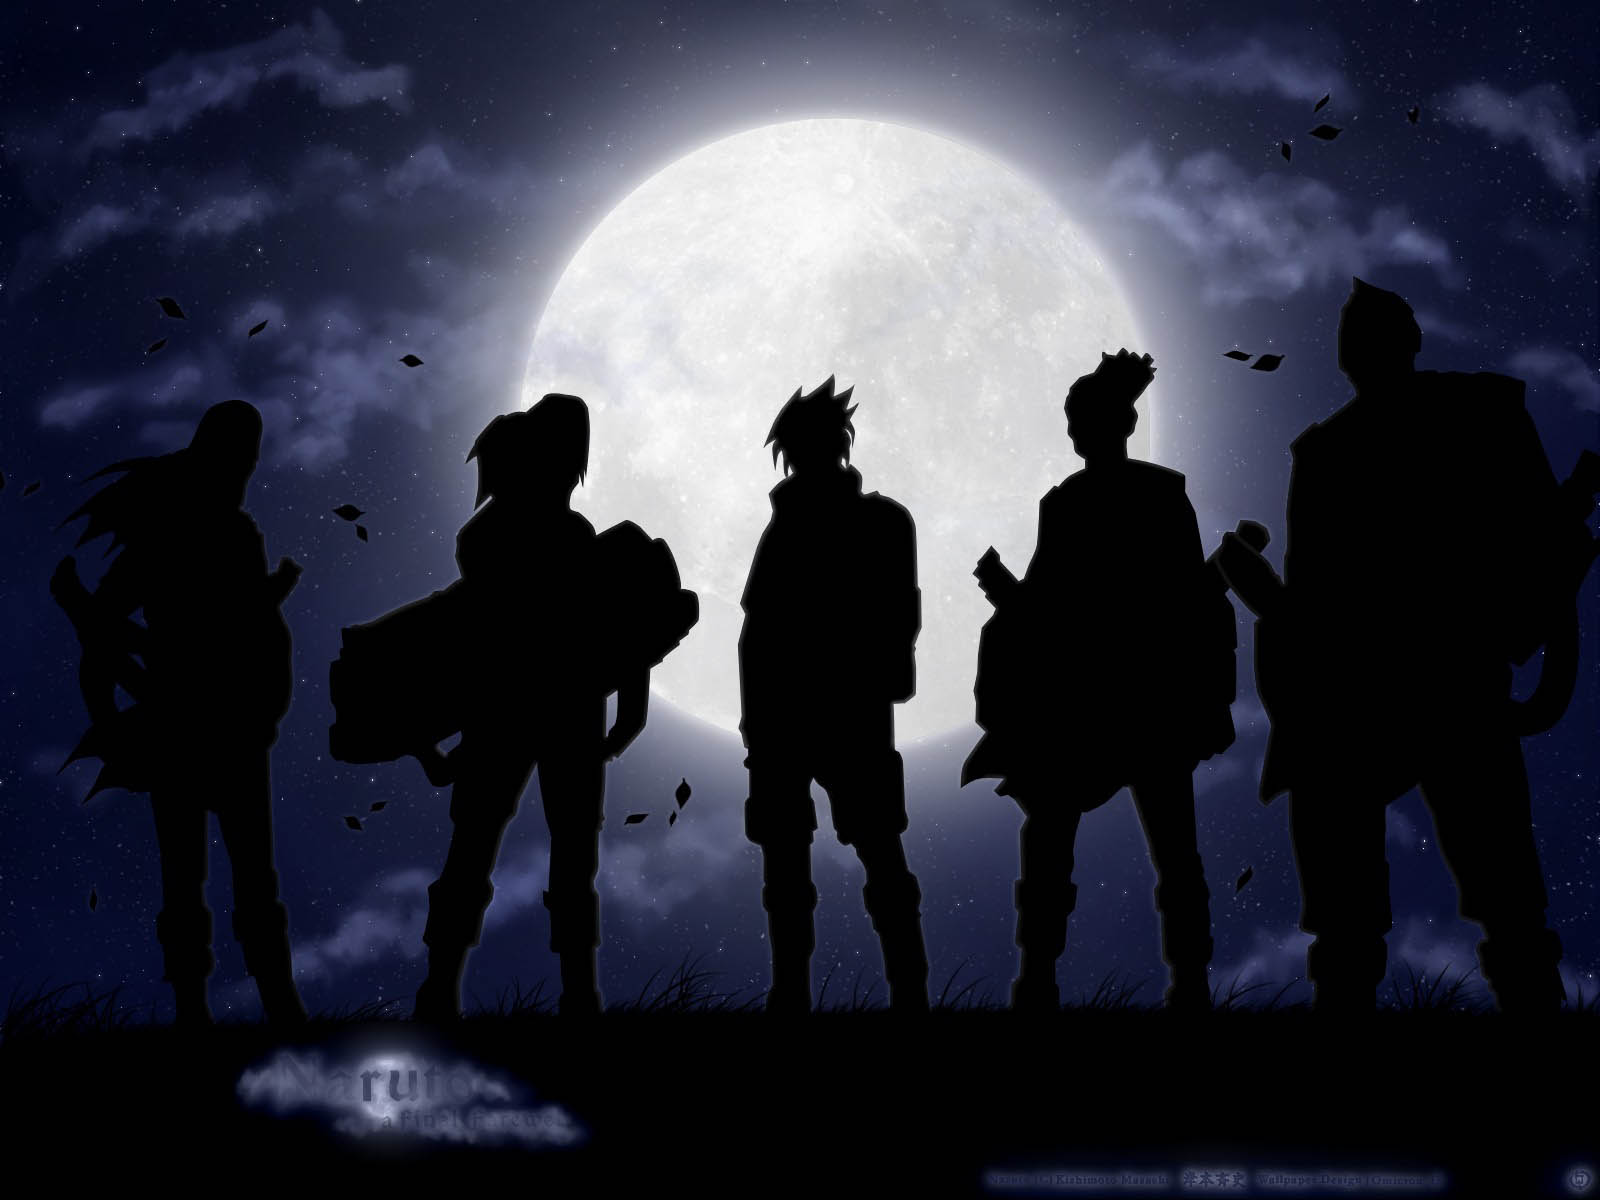 Naruto Shippuden Wallpapers | wallpaper